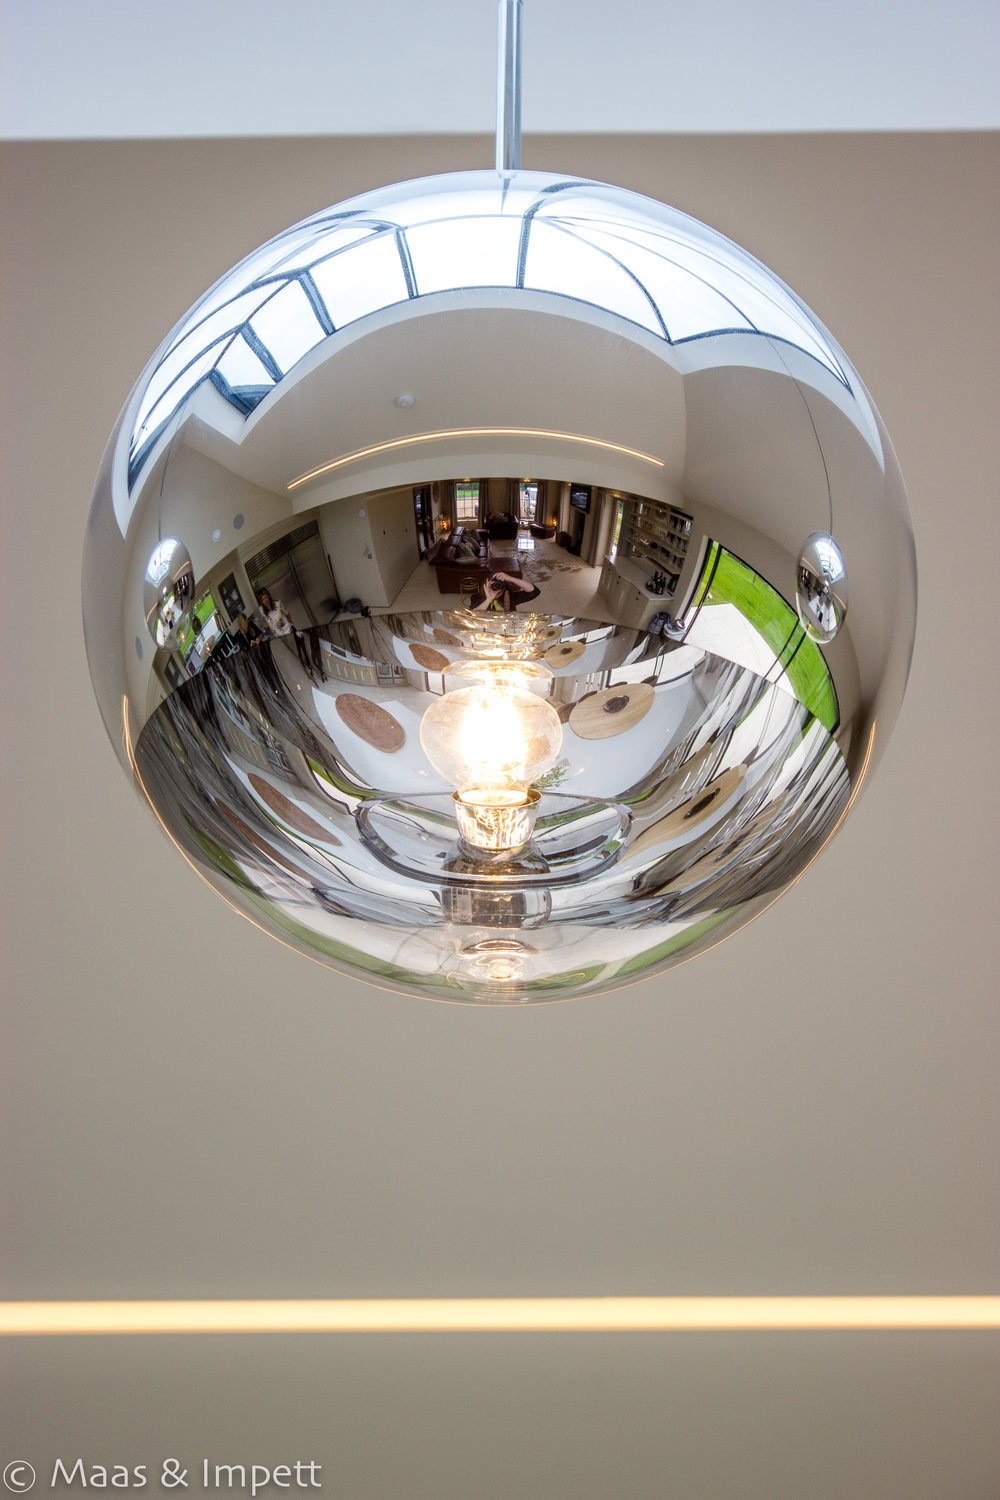 Lighting interior design, hampshire